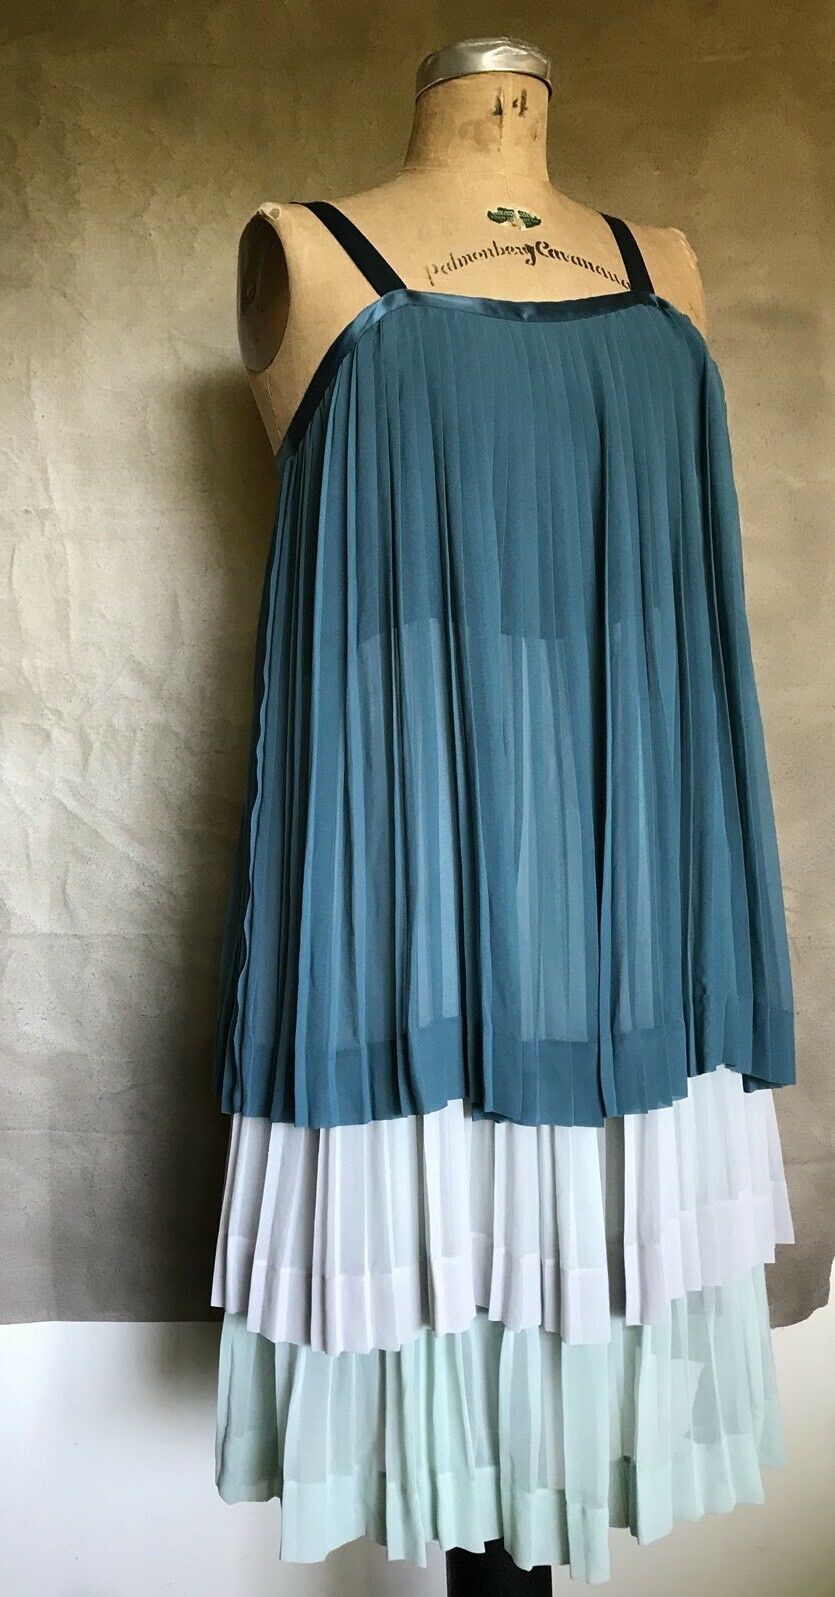 Anthropologie Girls From Savoy Dress Grün Mint Tierot Accordion Ruffle BAYAN 6